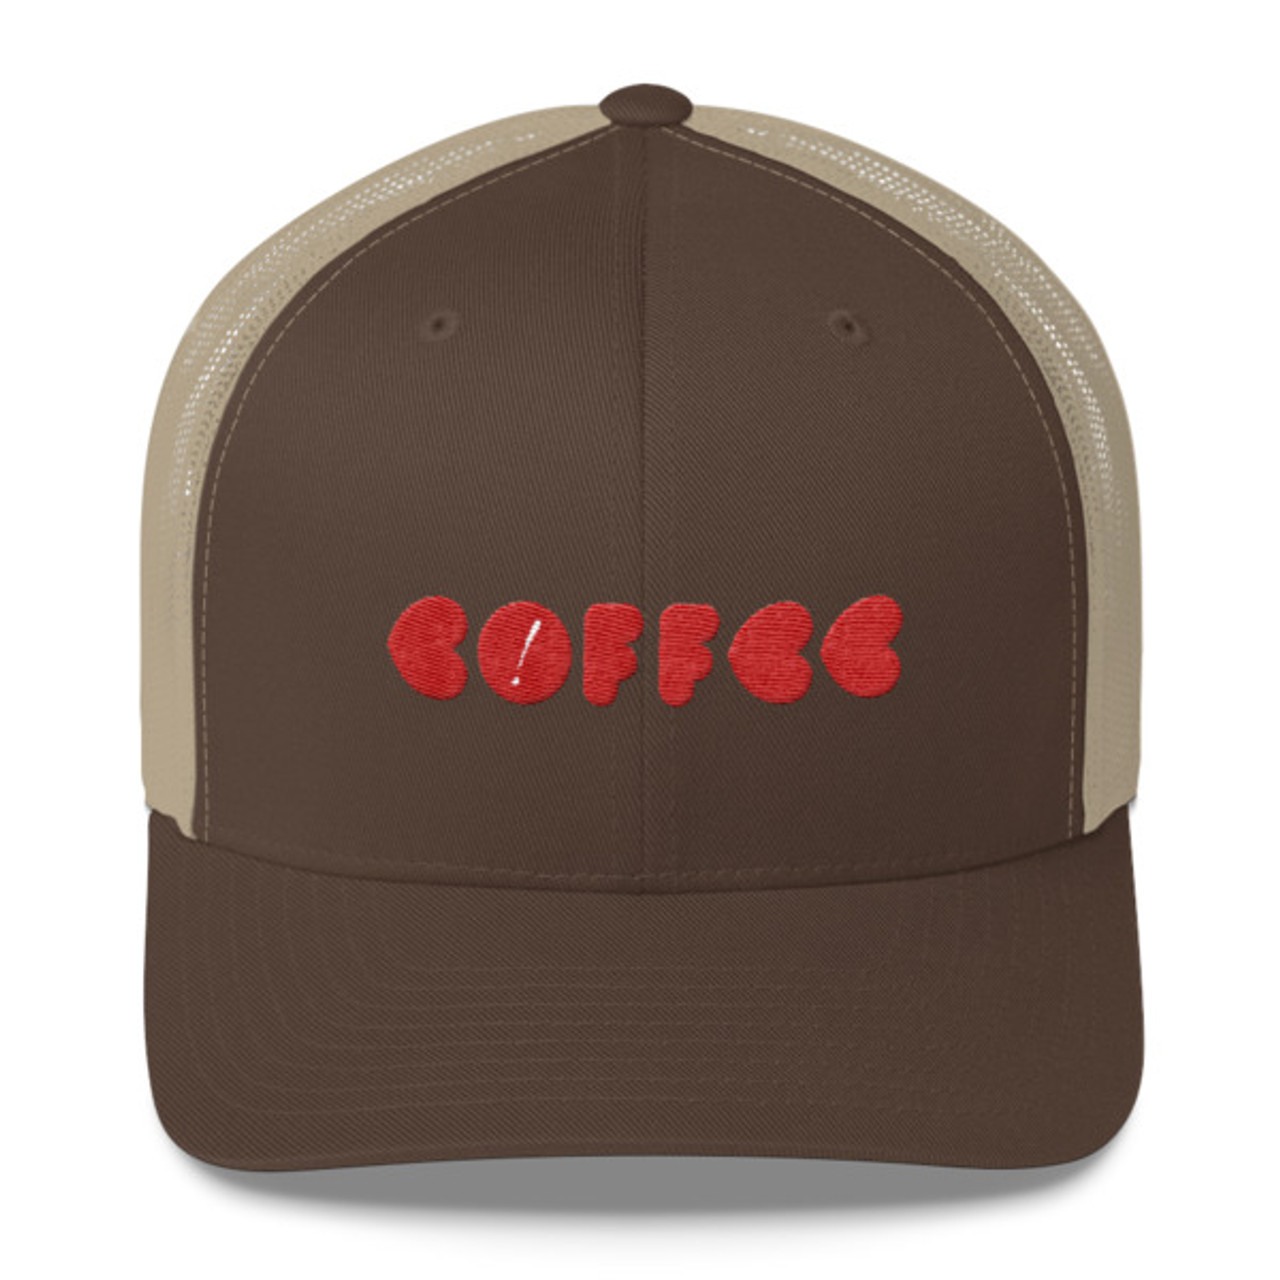 df8eec64db6ee A trucker cap with embroidered Gimme design. The front and brim of the cap  are